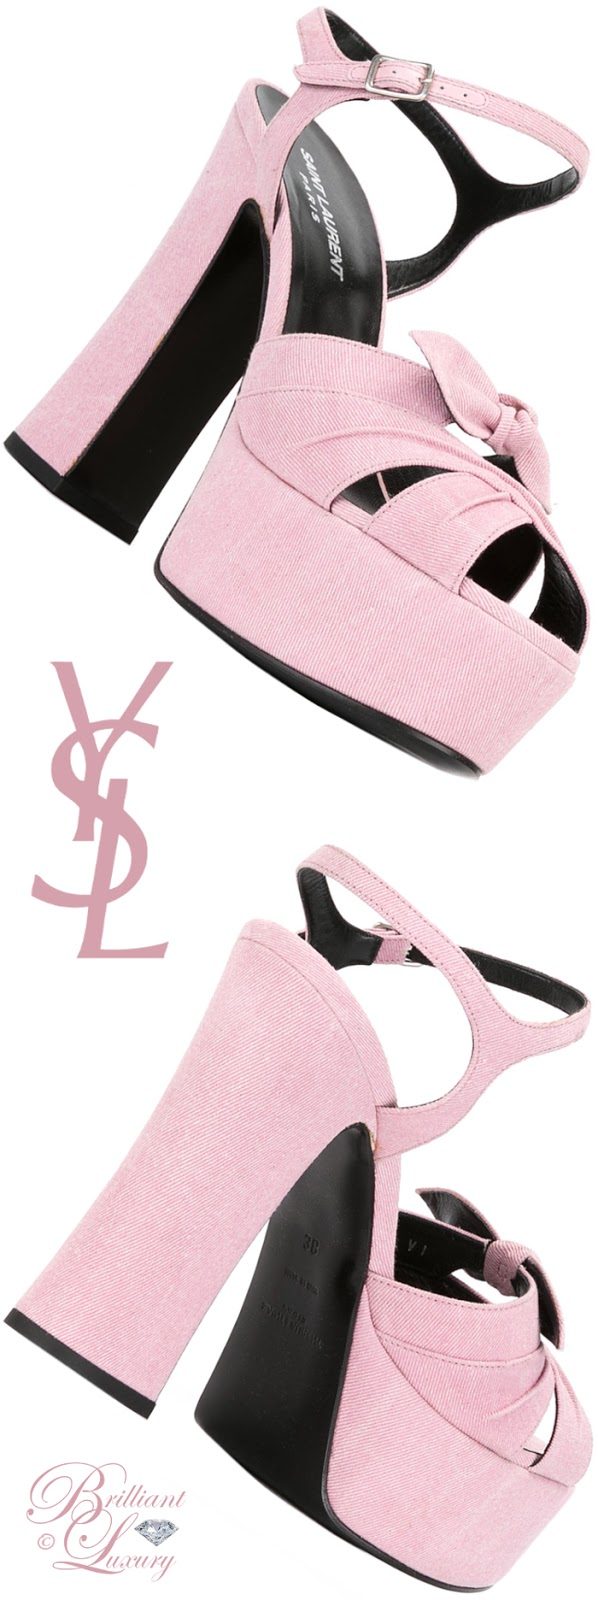 Brilliant Luxury ♦ Saint Laurent Candy 80 Bow Sandals